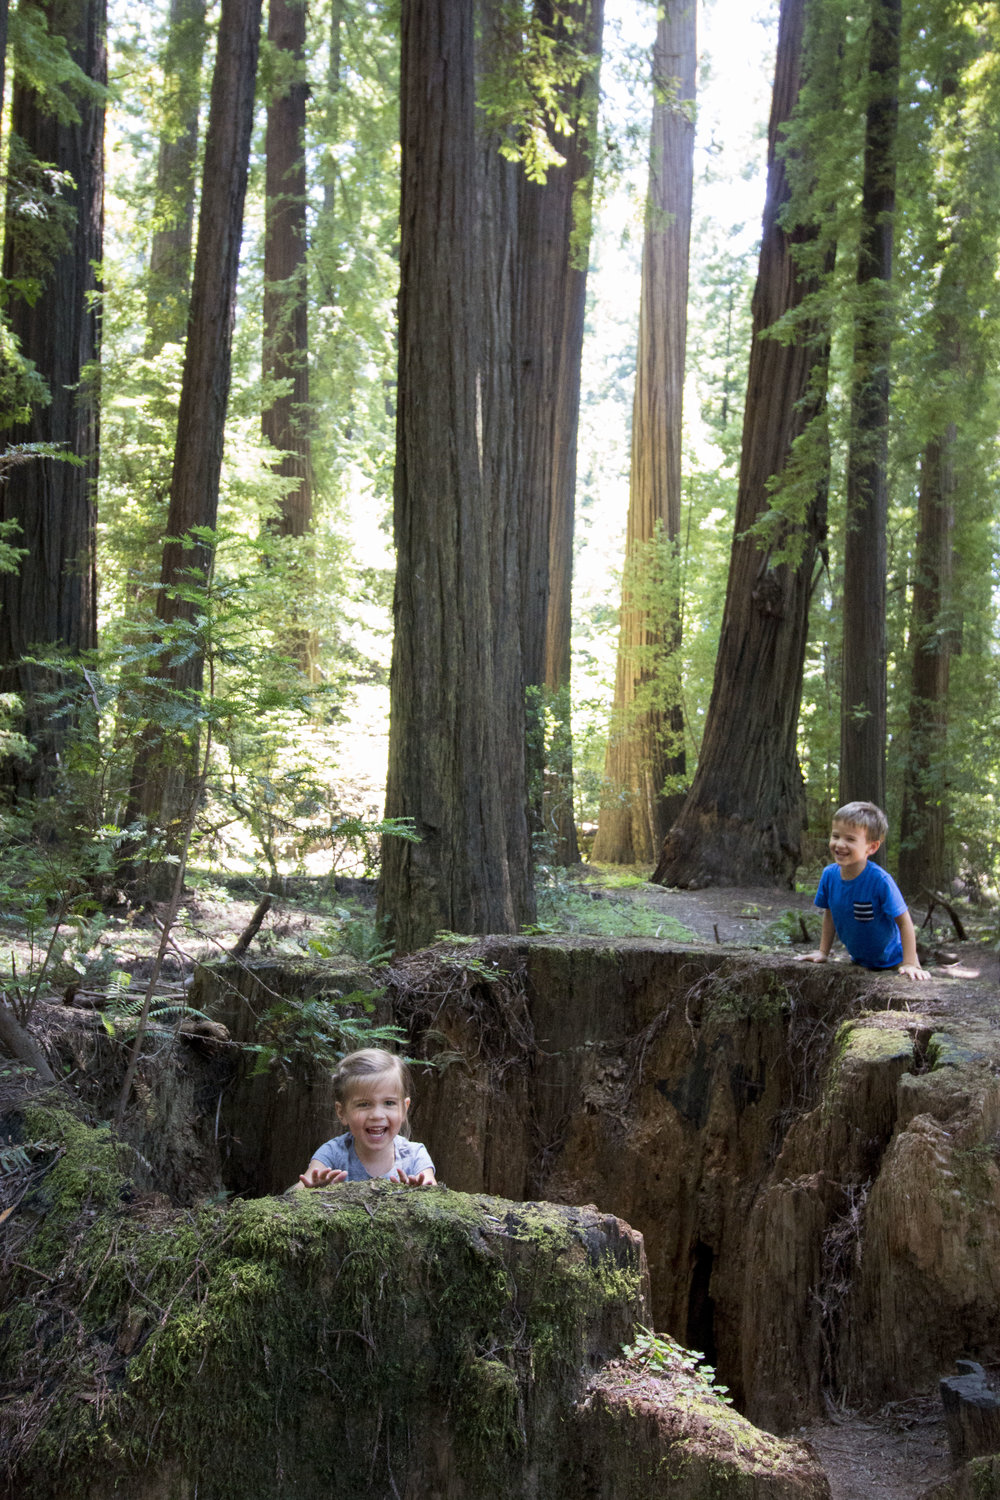 Often what's at your feet is as impressive as what's above your head when in the redwoods.